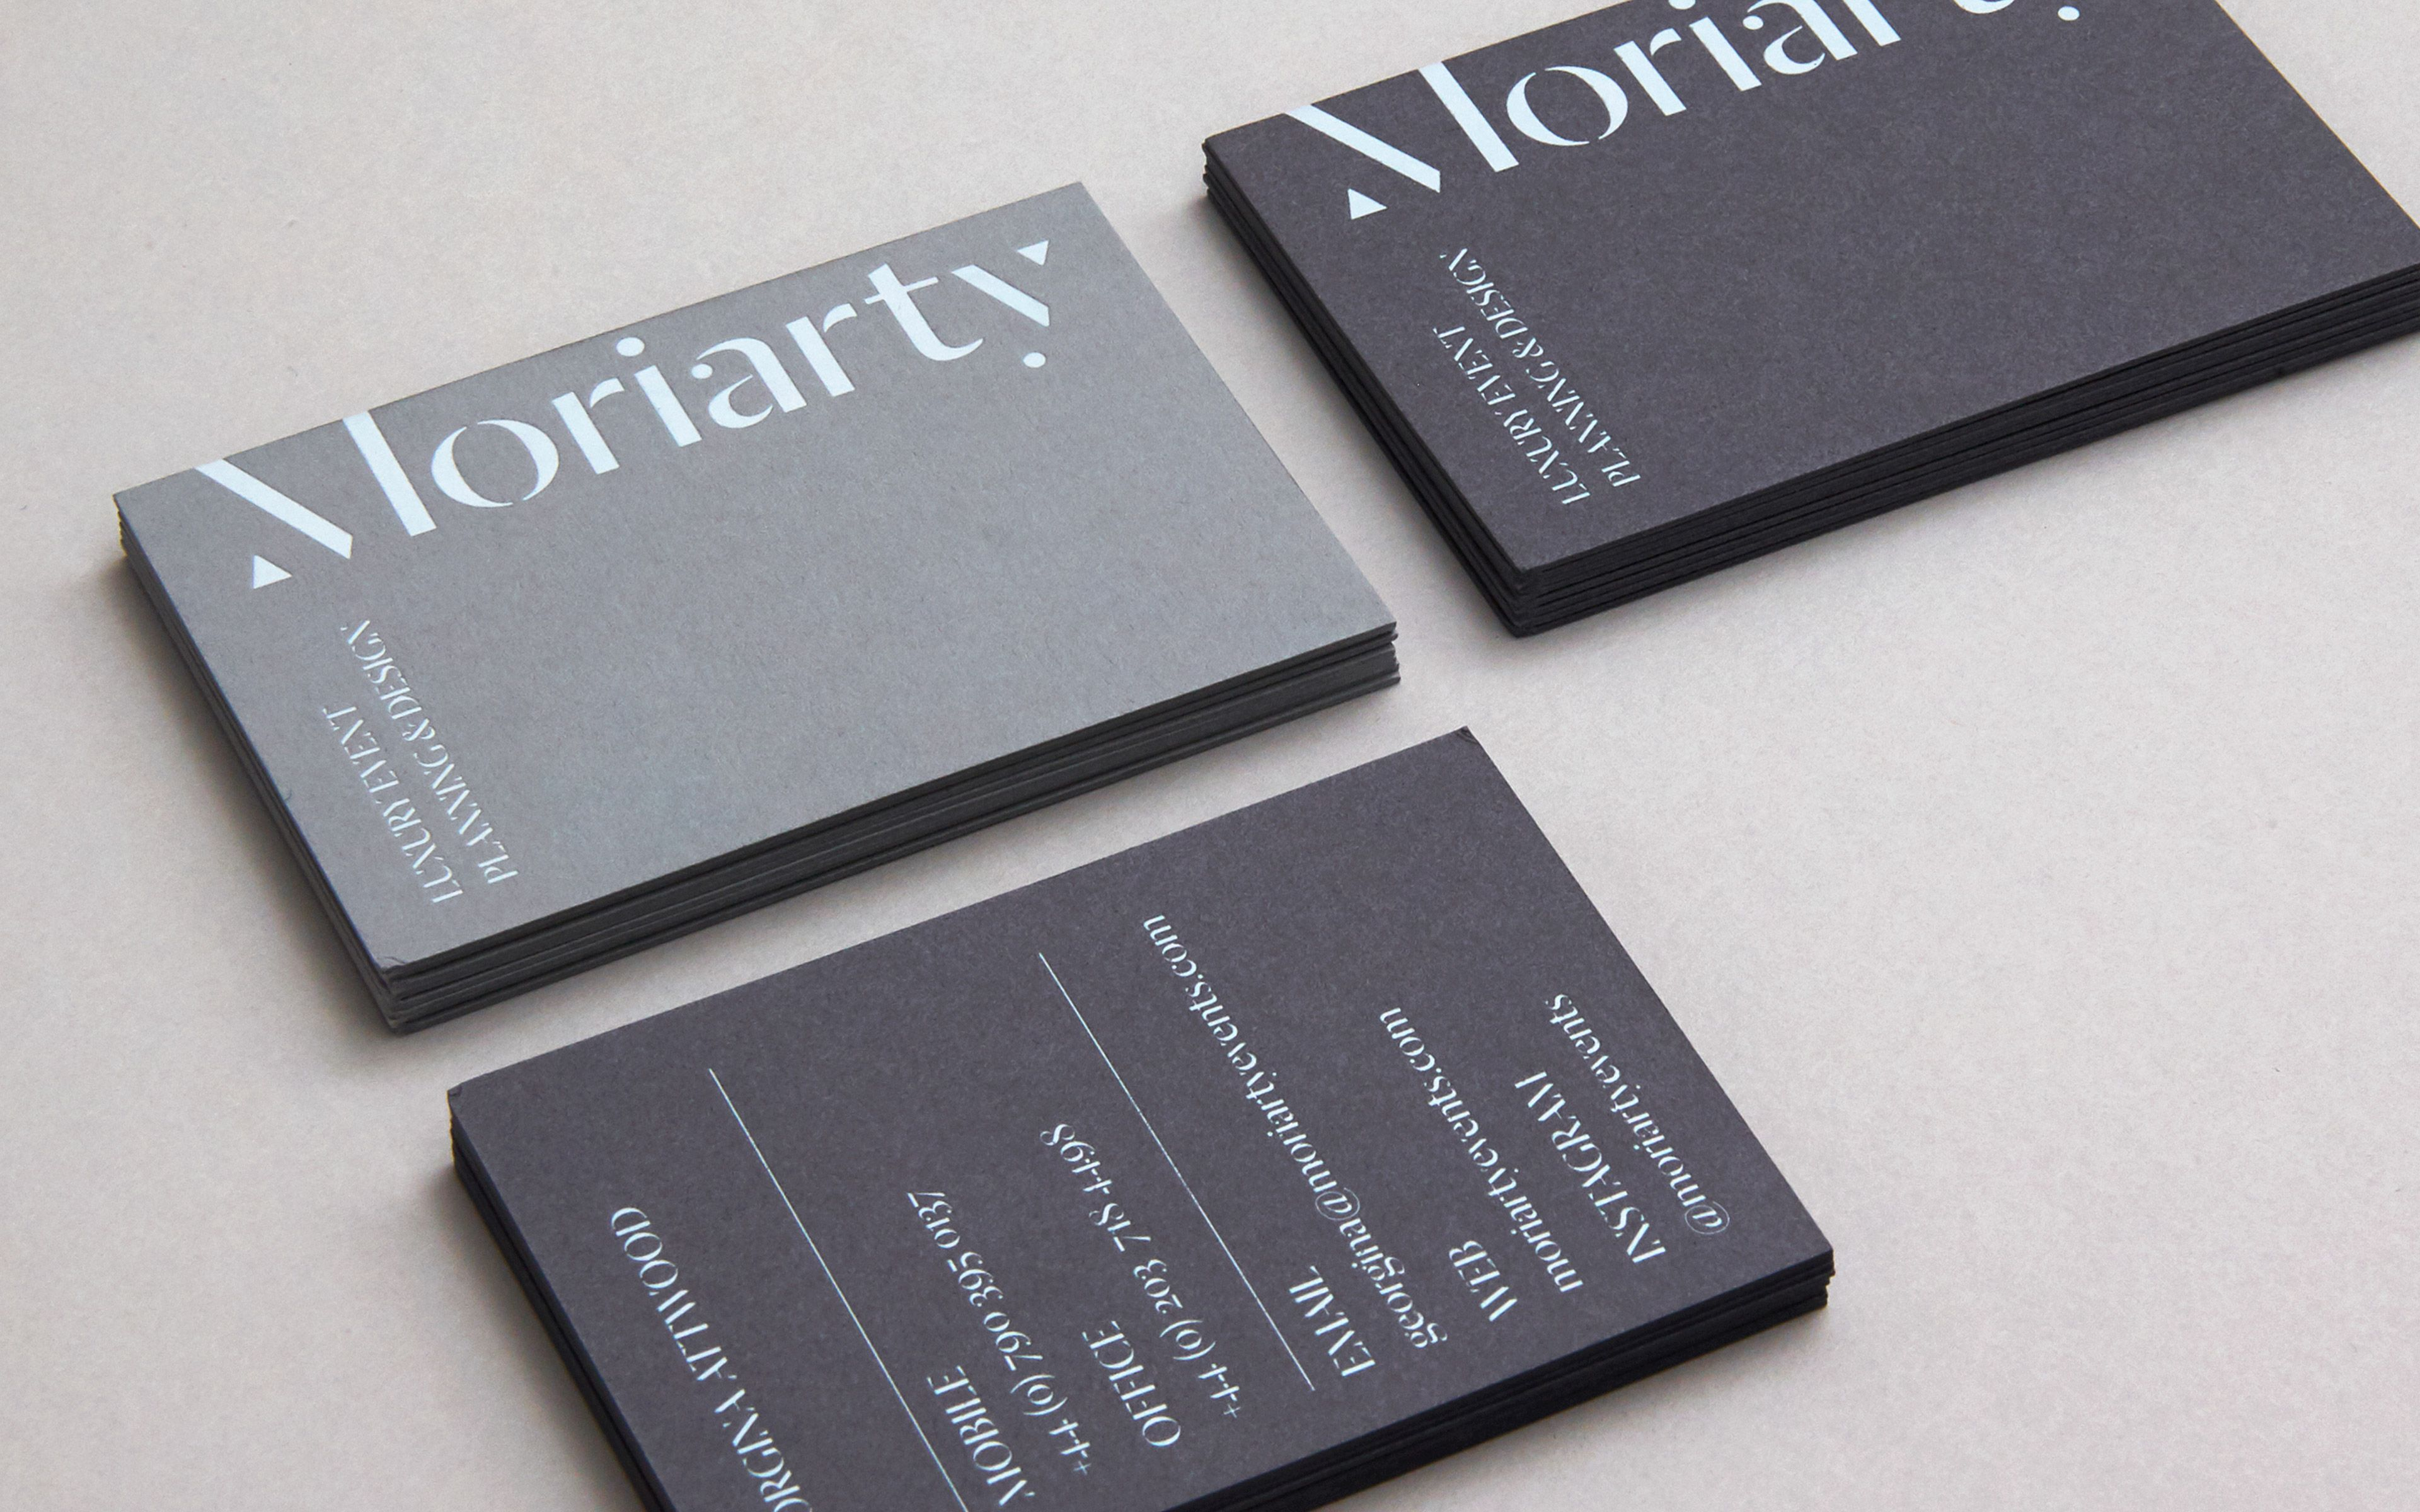 Bond helped Luxury Event Planning specialist Moriarty realise a new ...